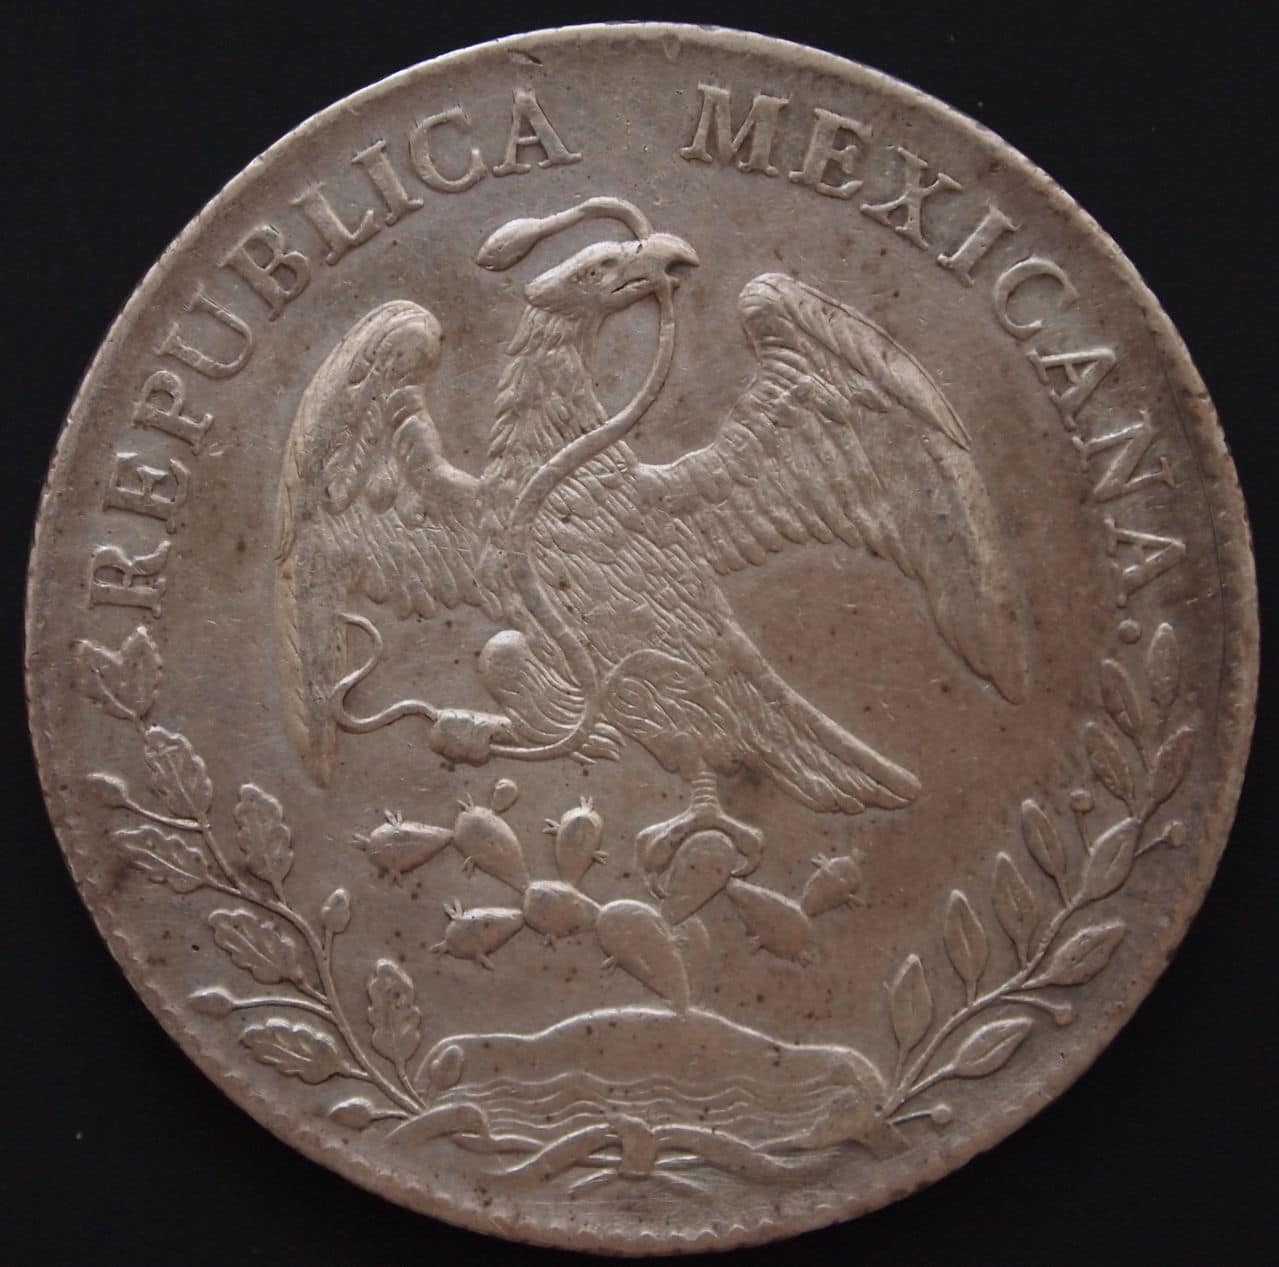 8 reales Culiacan 2